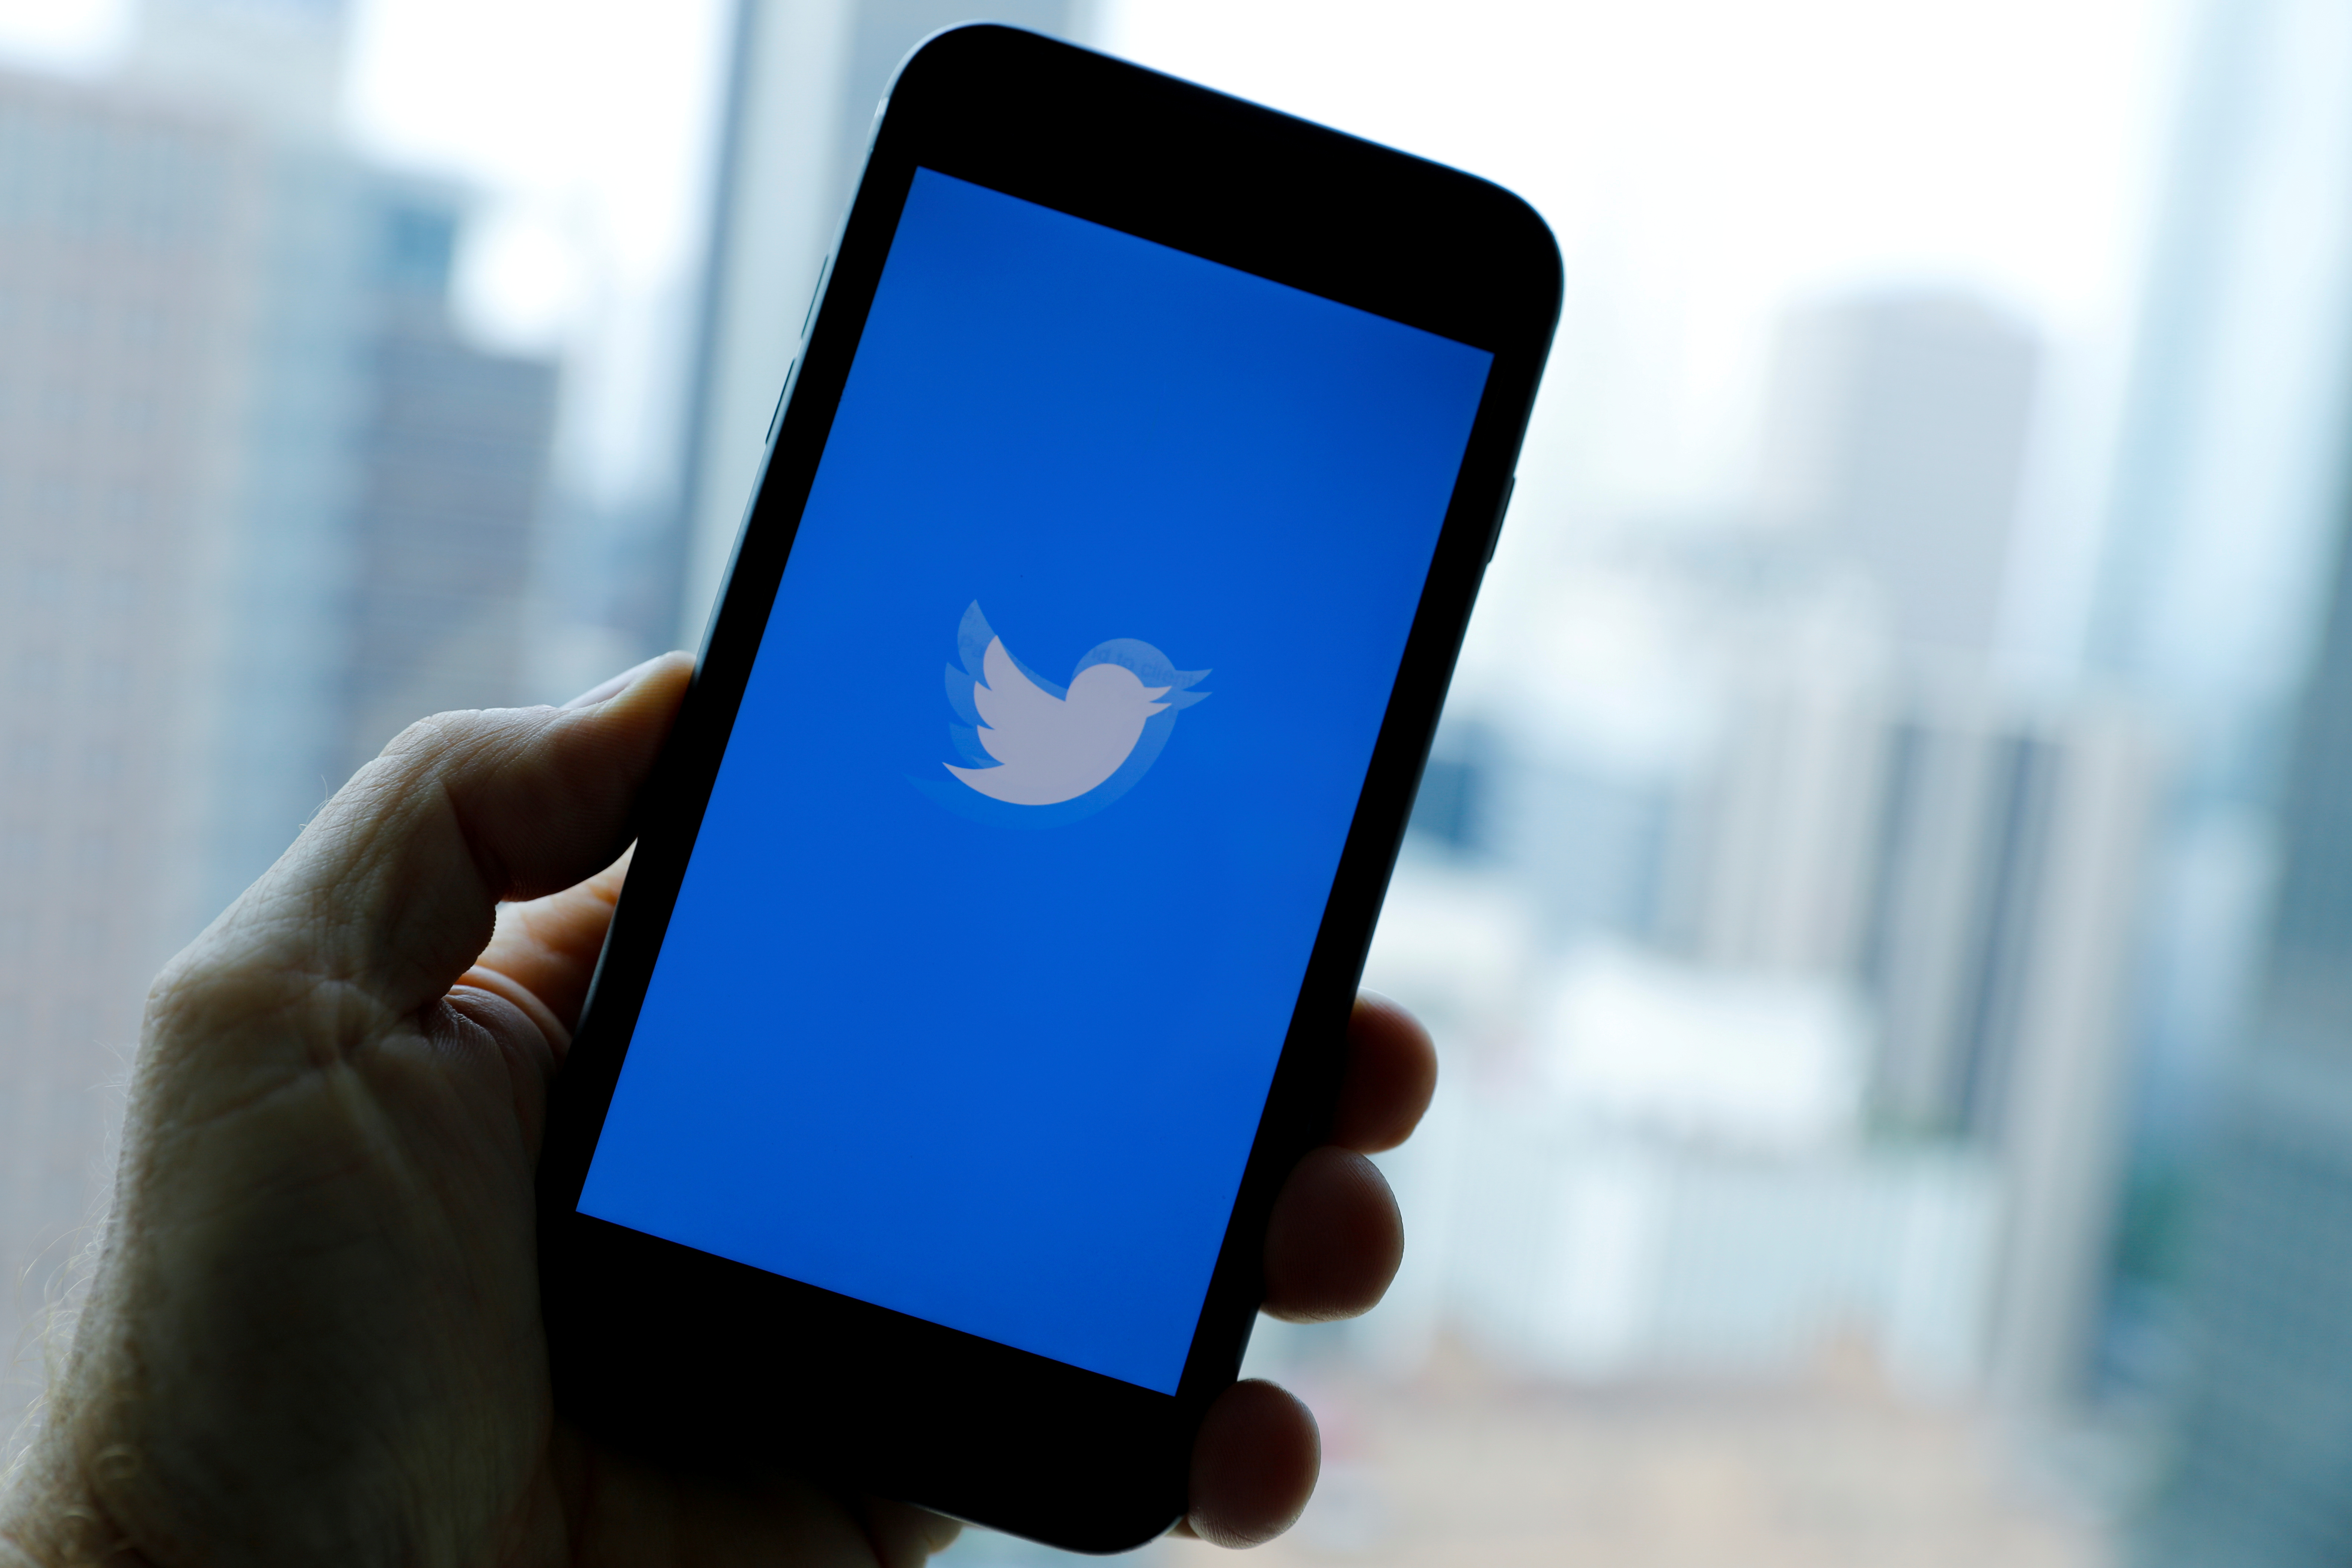 The Twitter App loads on an iPhone in this illustration photograph taken in Los Angeles, California, U.S., July 22, 2019. REUTERS/Mike Blake